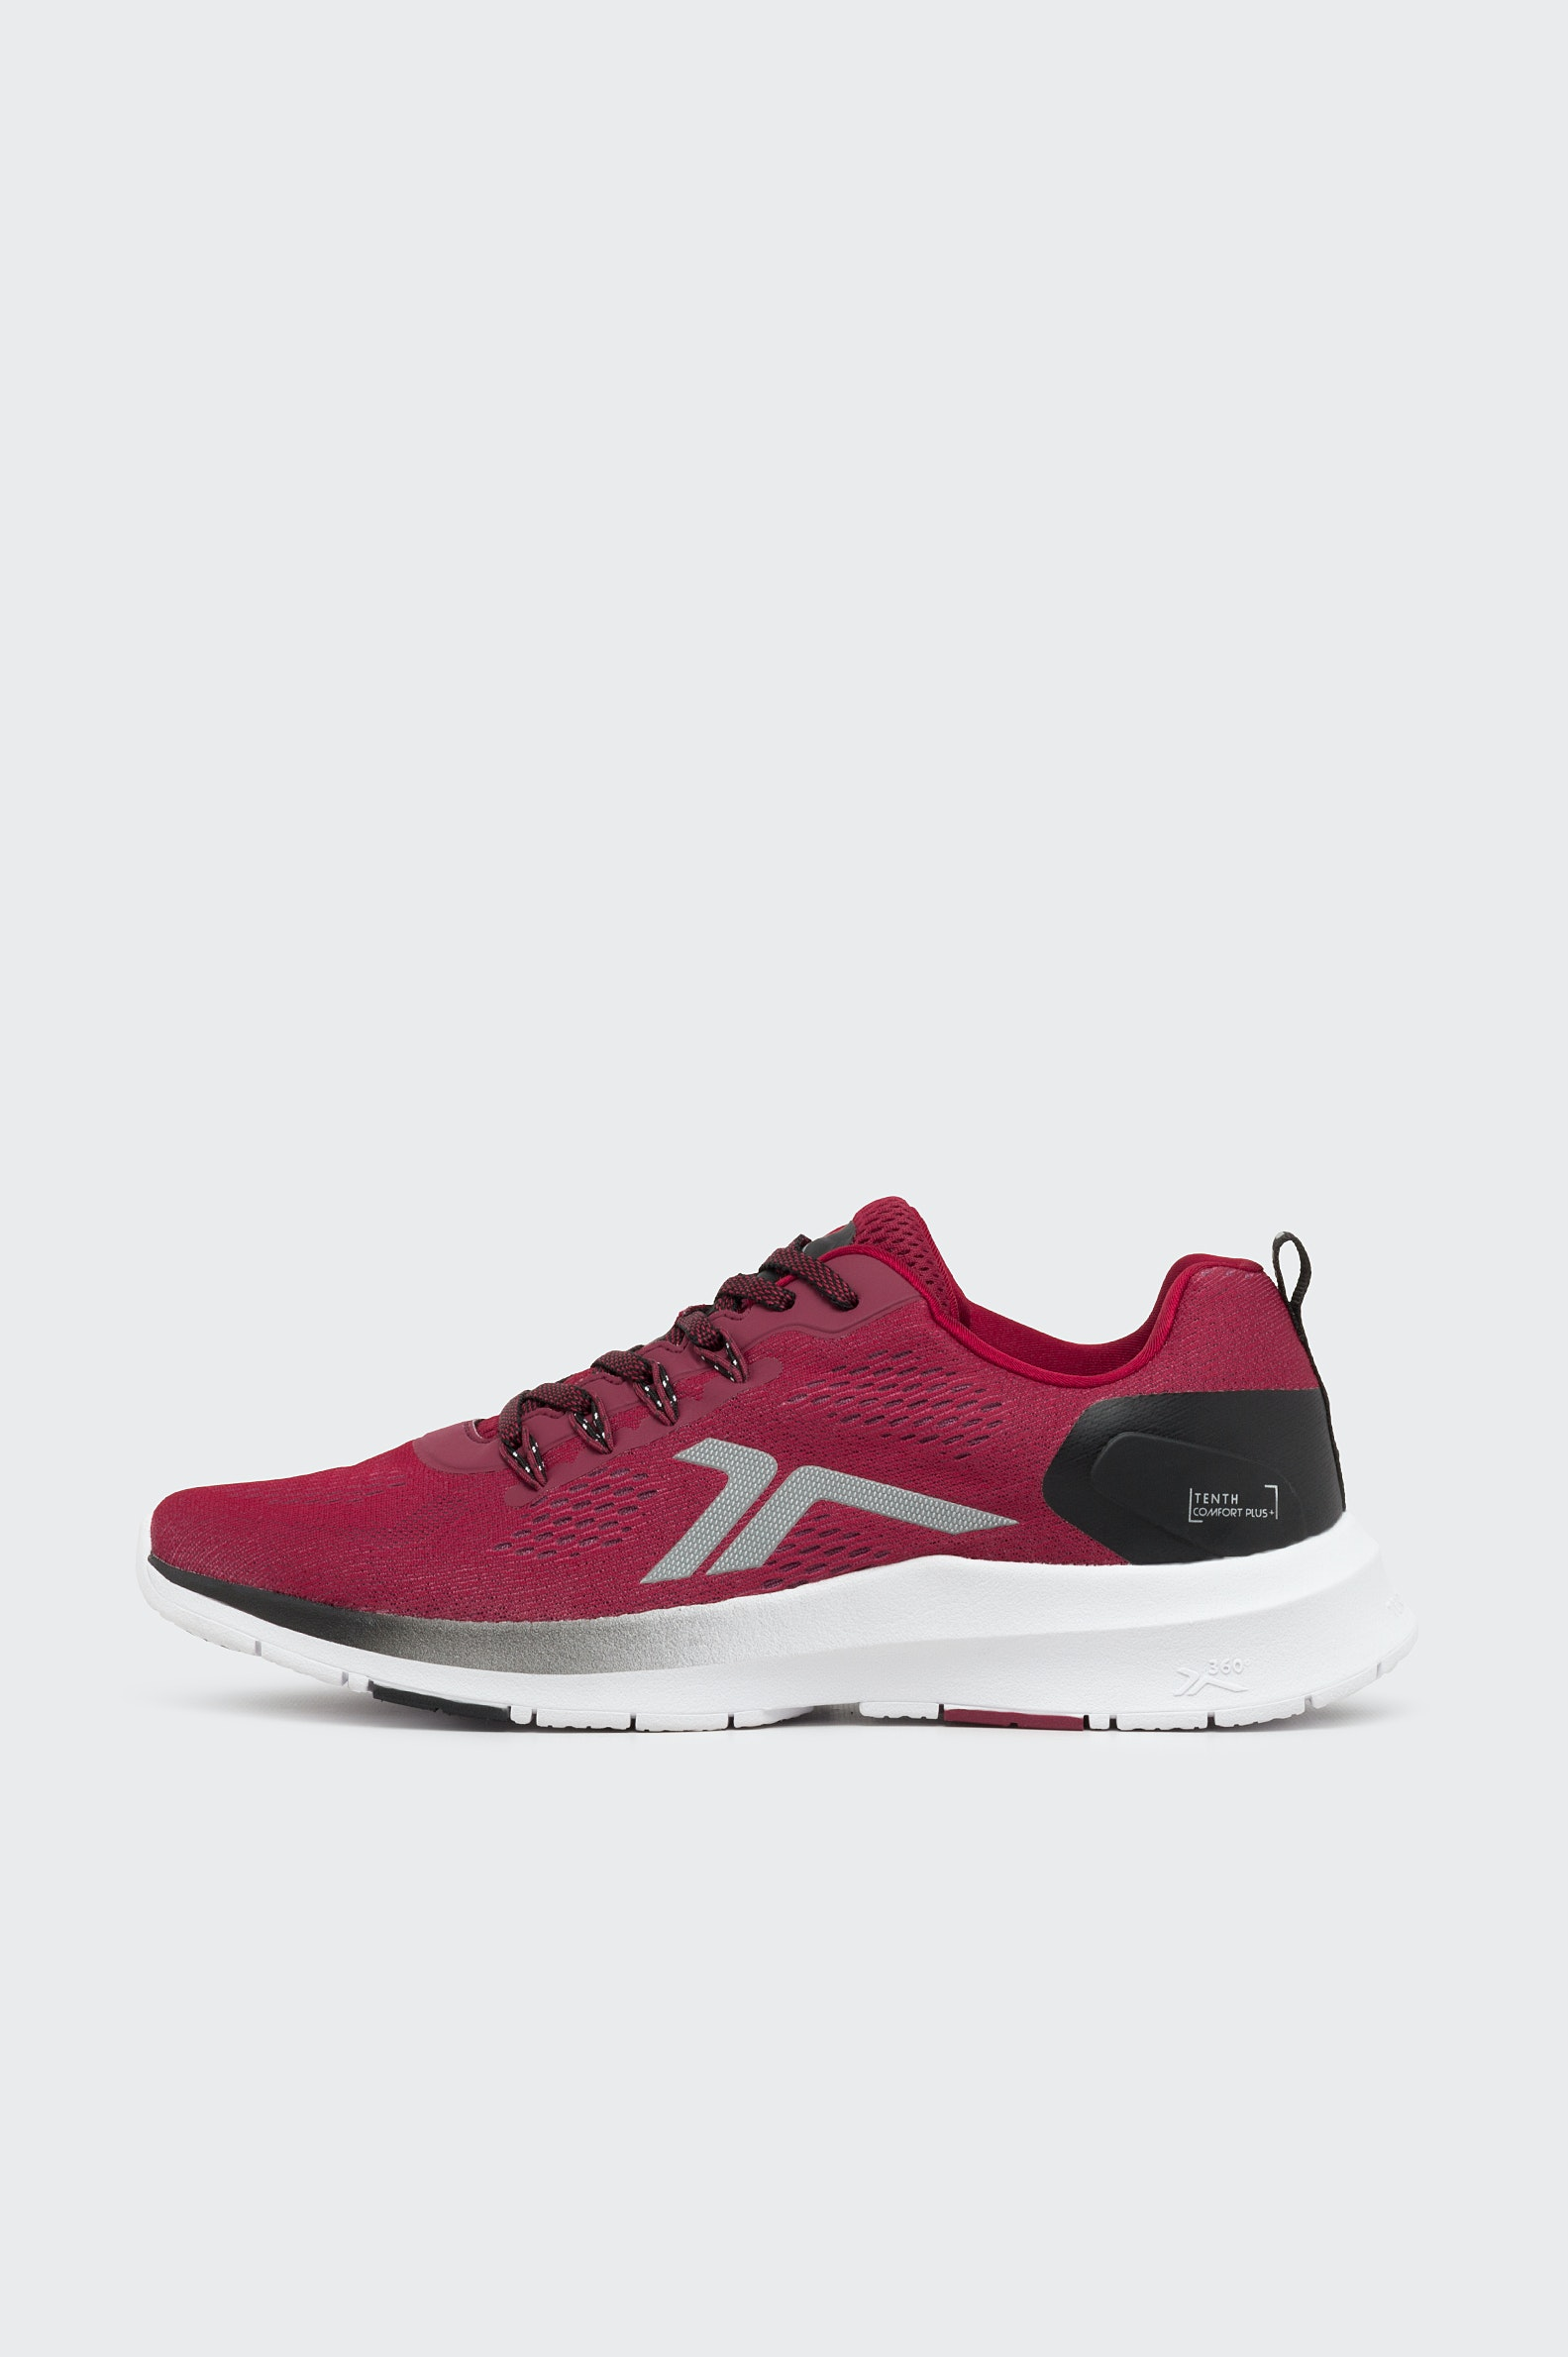 CHAUSSURES RUNNING TENTH APOLO MN HOMME